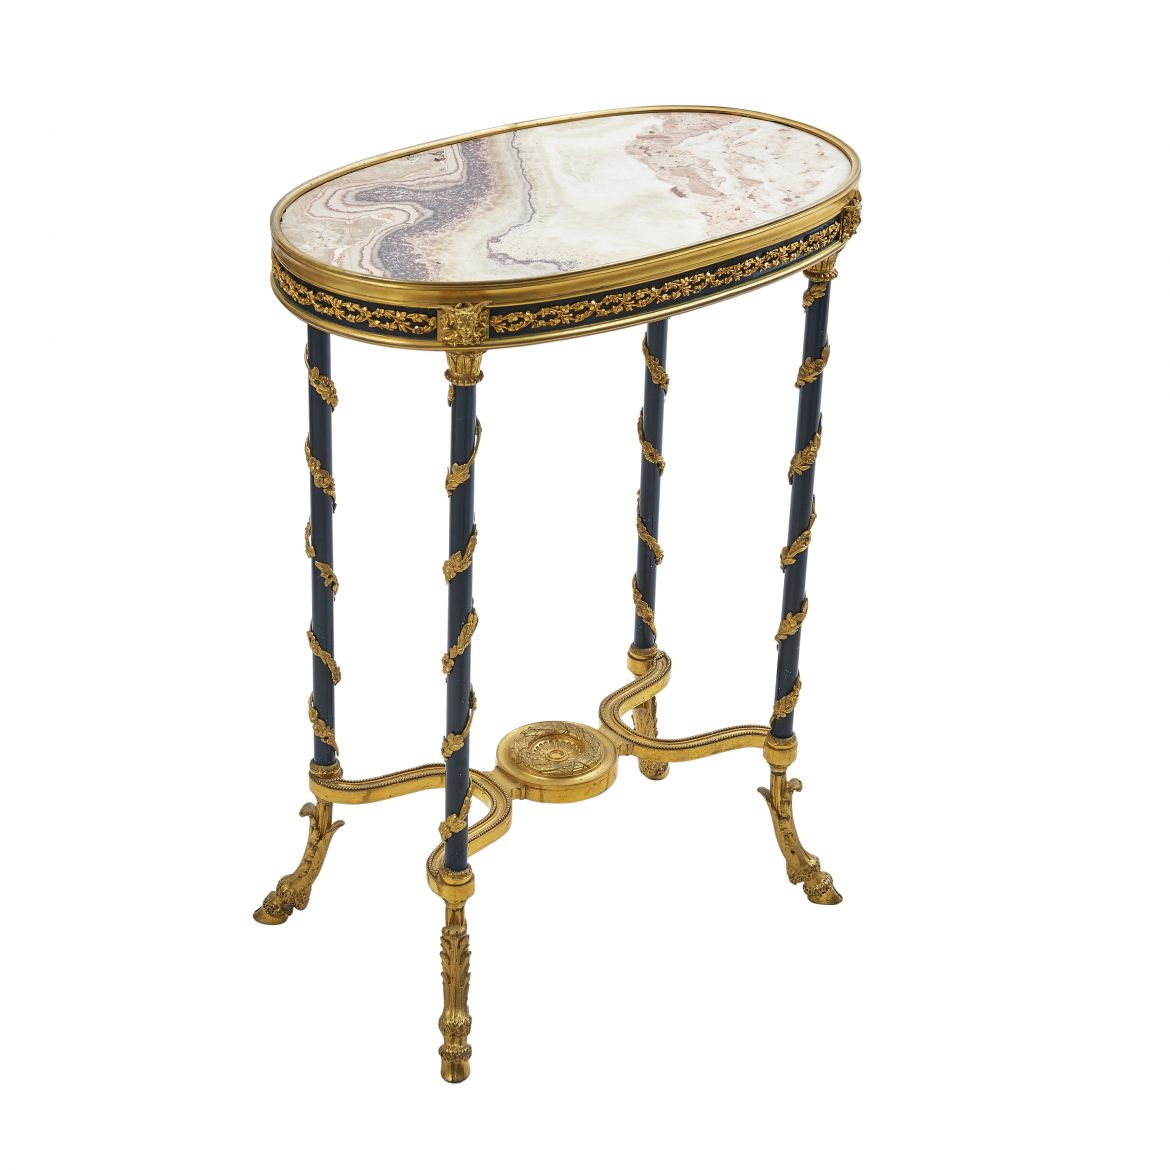 French Bronze And Ormolu Table With Onyx Top